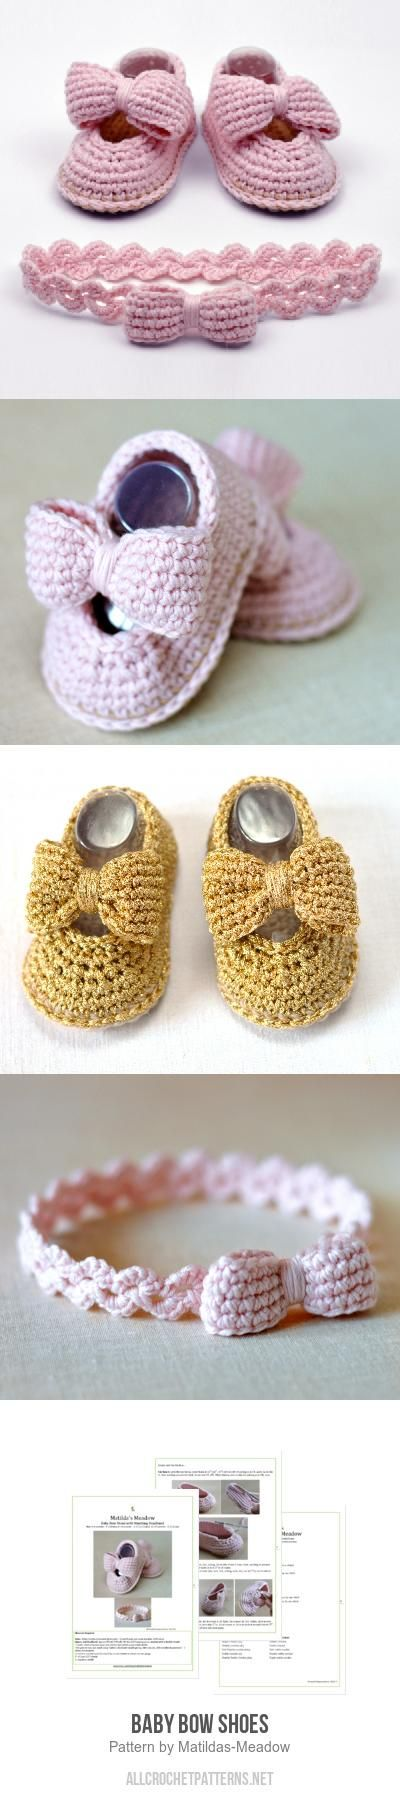 Baby Bow Shoes Crochet Pattern | Patrones de ganchillo | Pinterest ...